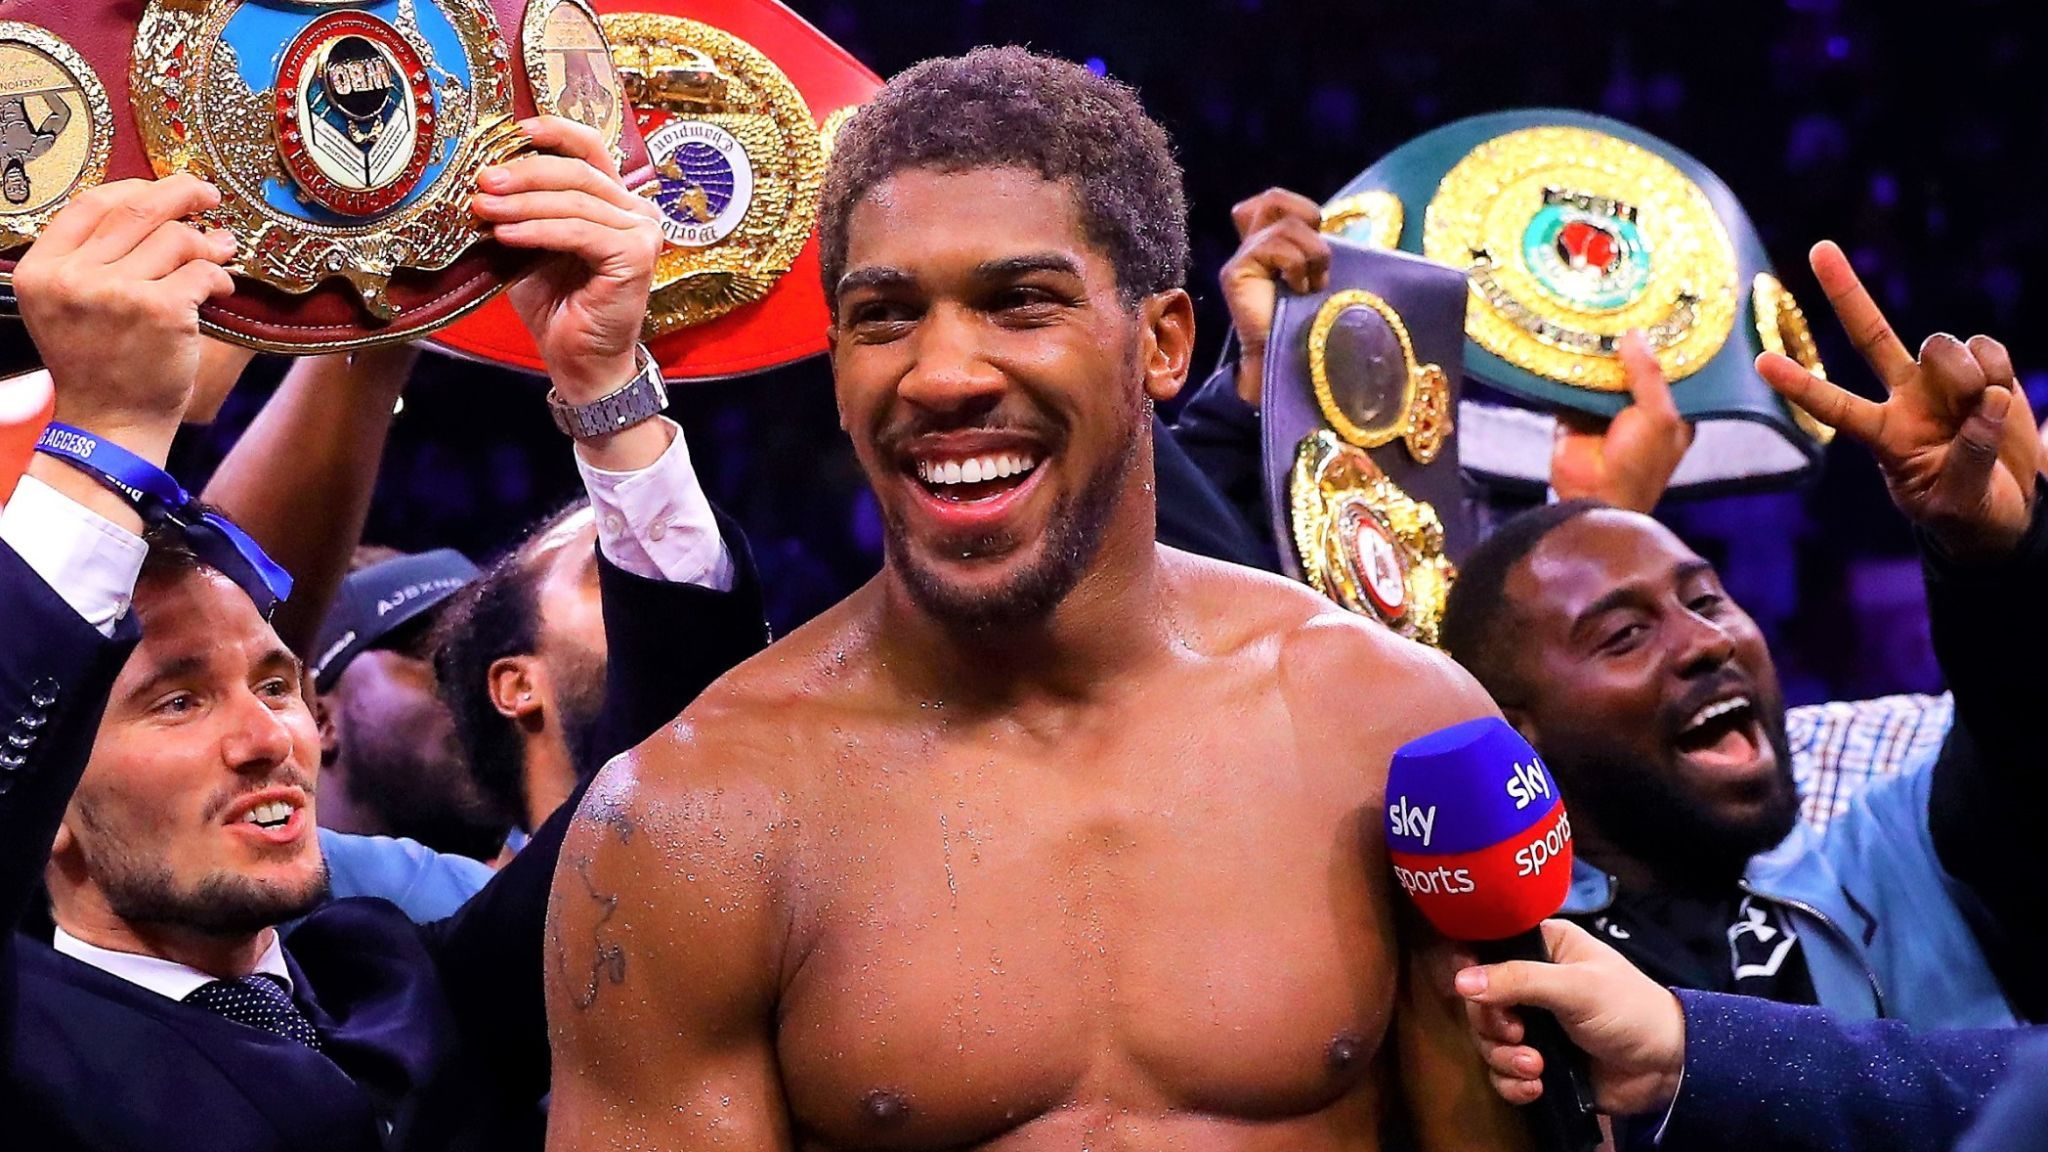 Anthony Joshua's Win Is Our Win, Nigeria's Win